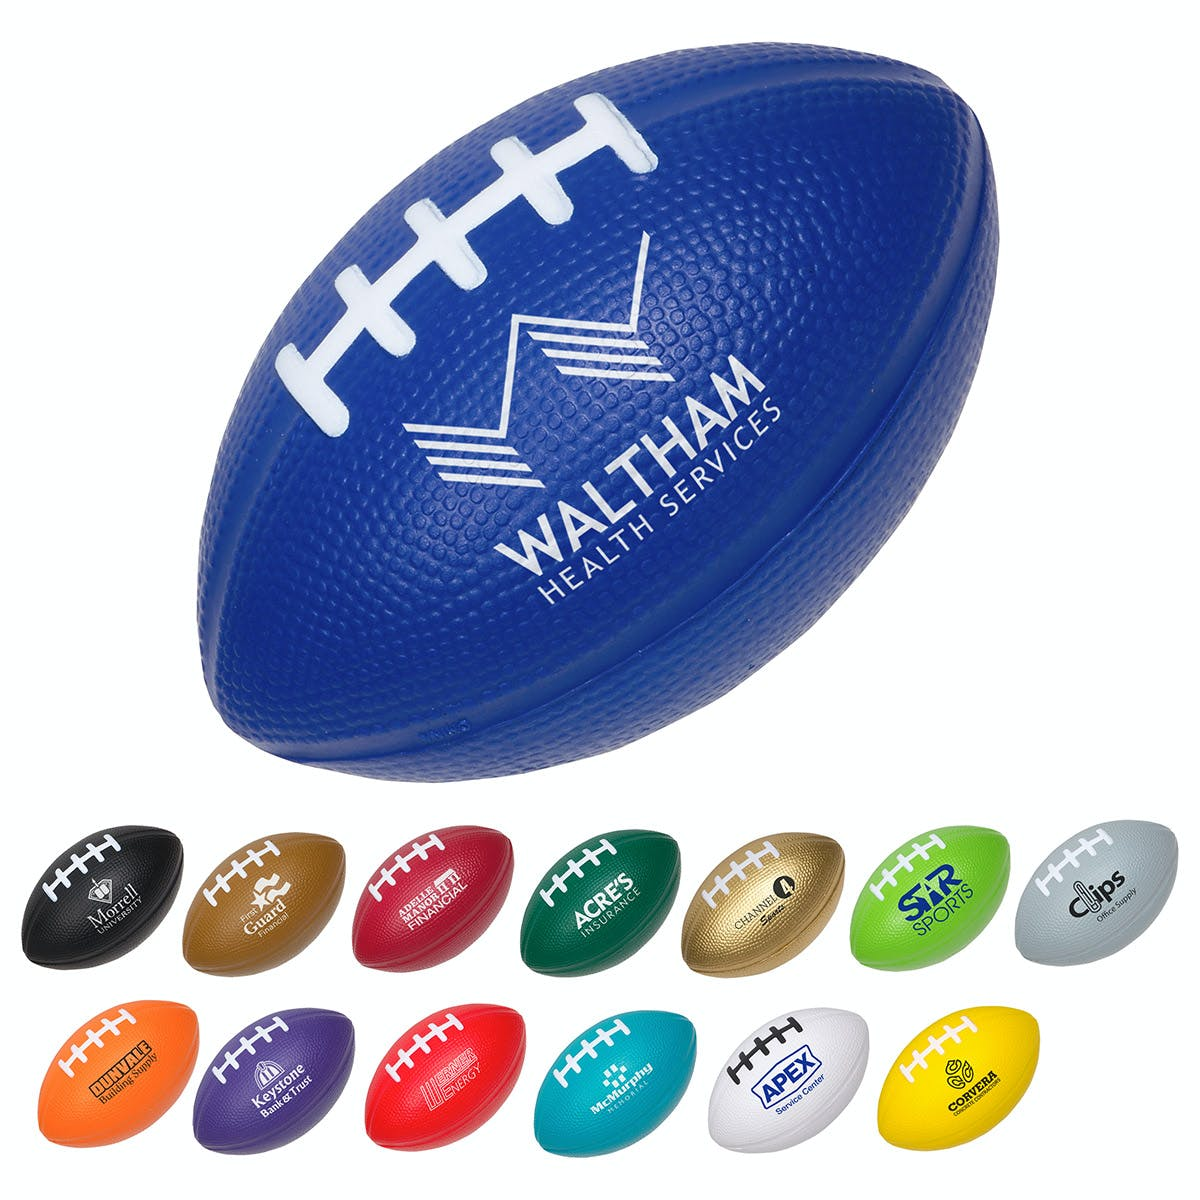 Football Stress Reliever (Item # VAHHR-KBDBG) Stress ball sold by InkEasy